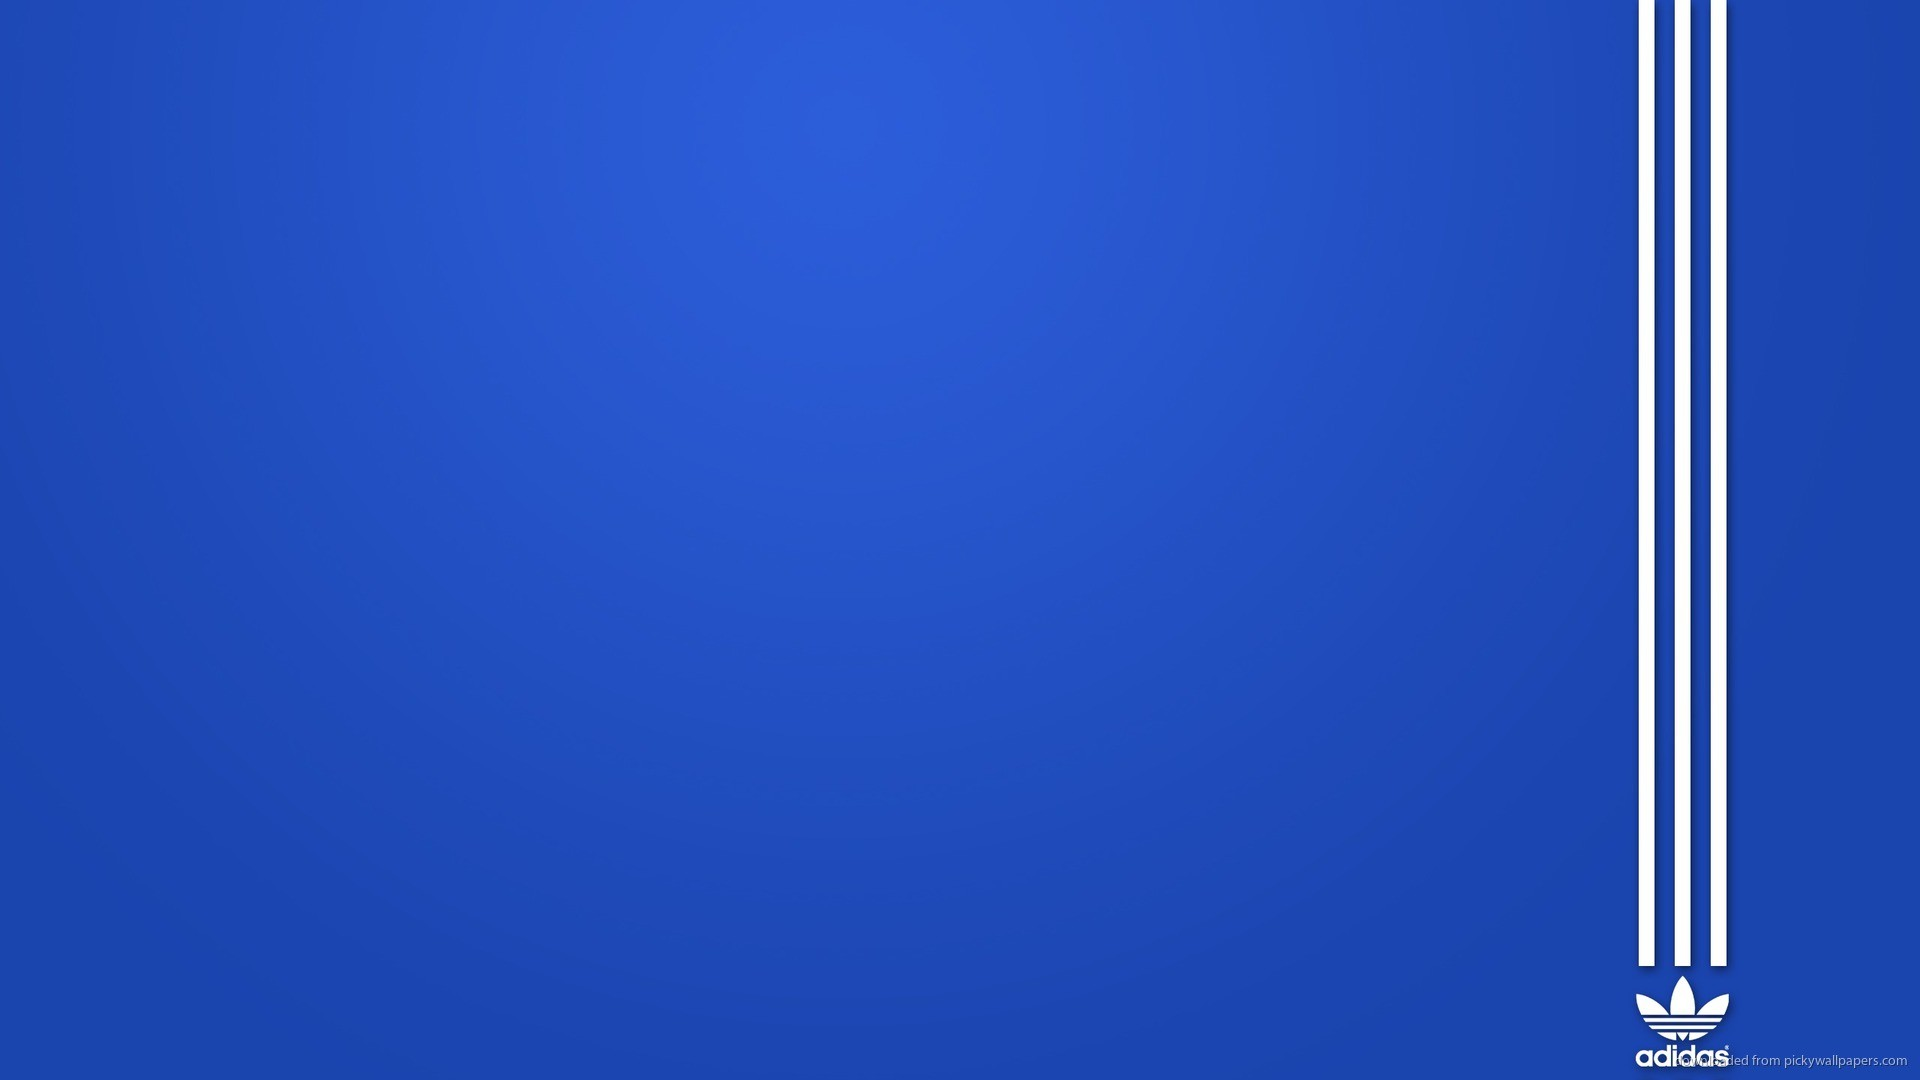 Blue Adidas Widescreen Wallpaper Background picture